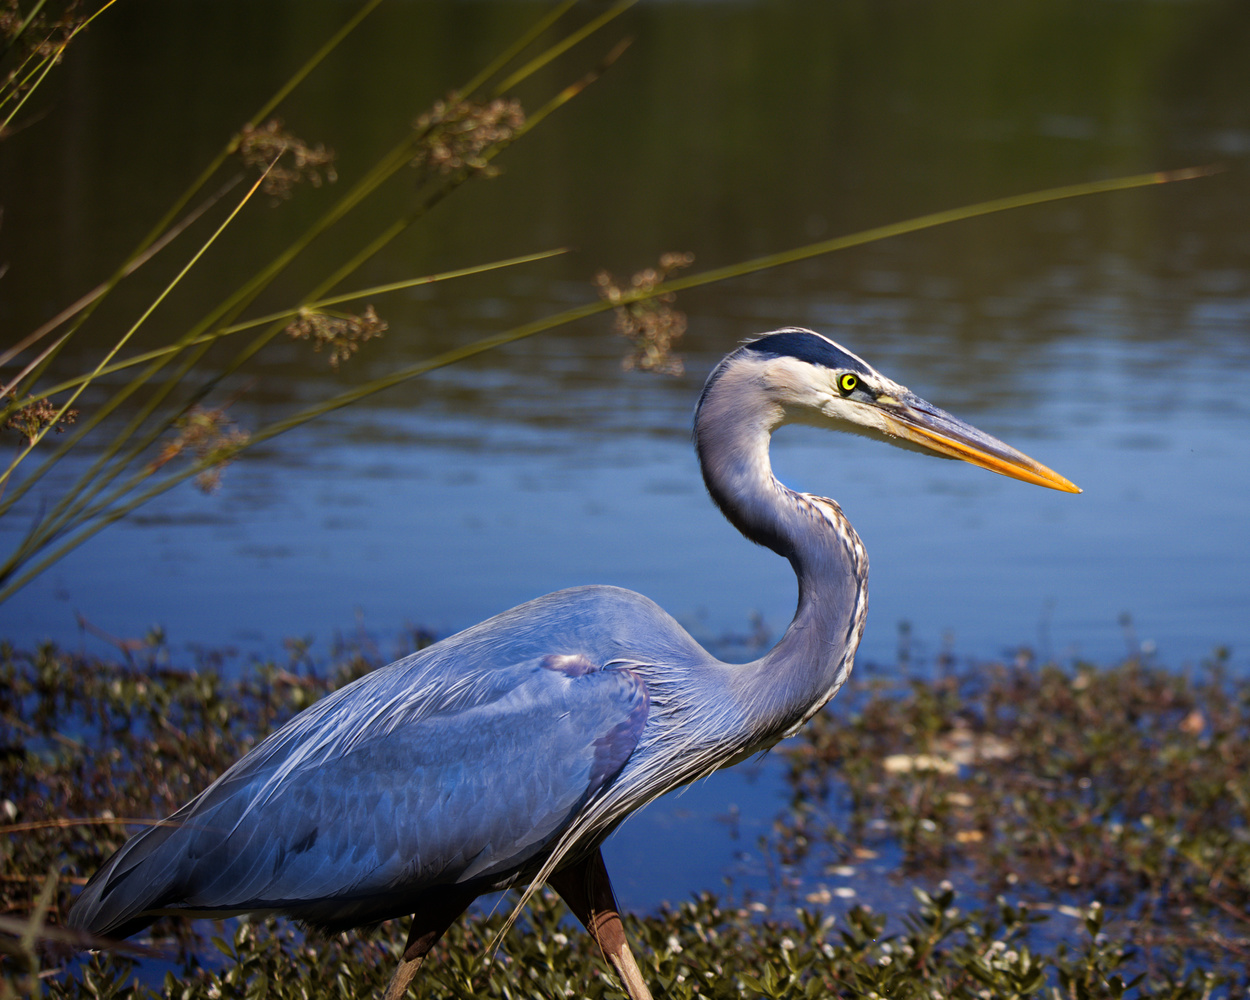 Heron in the Reeds by James Mason